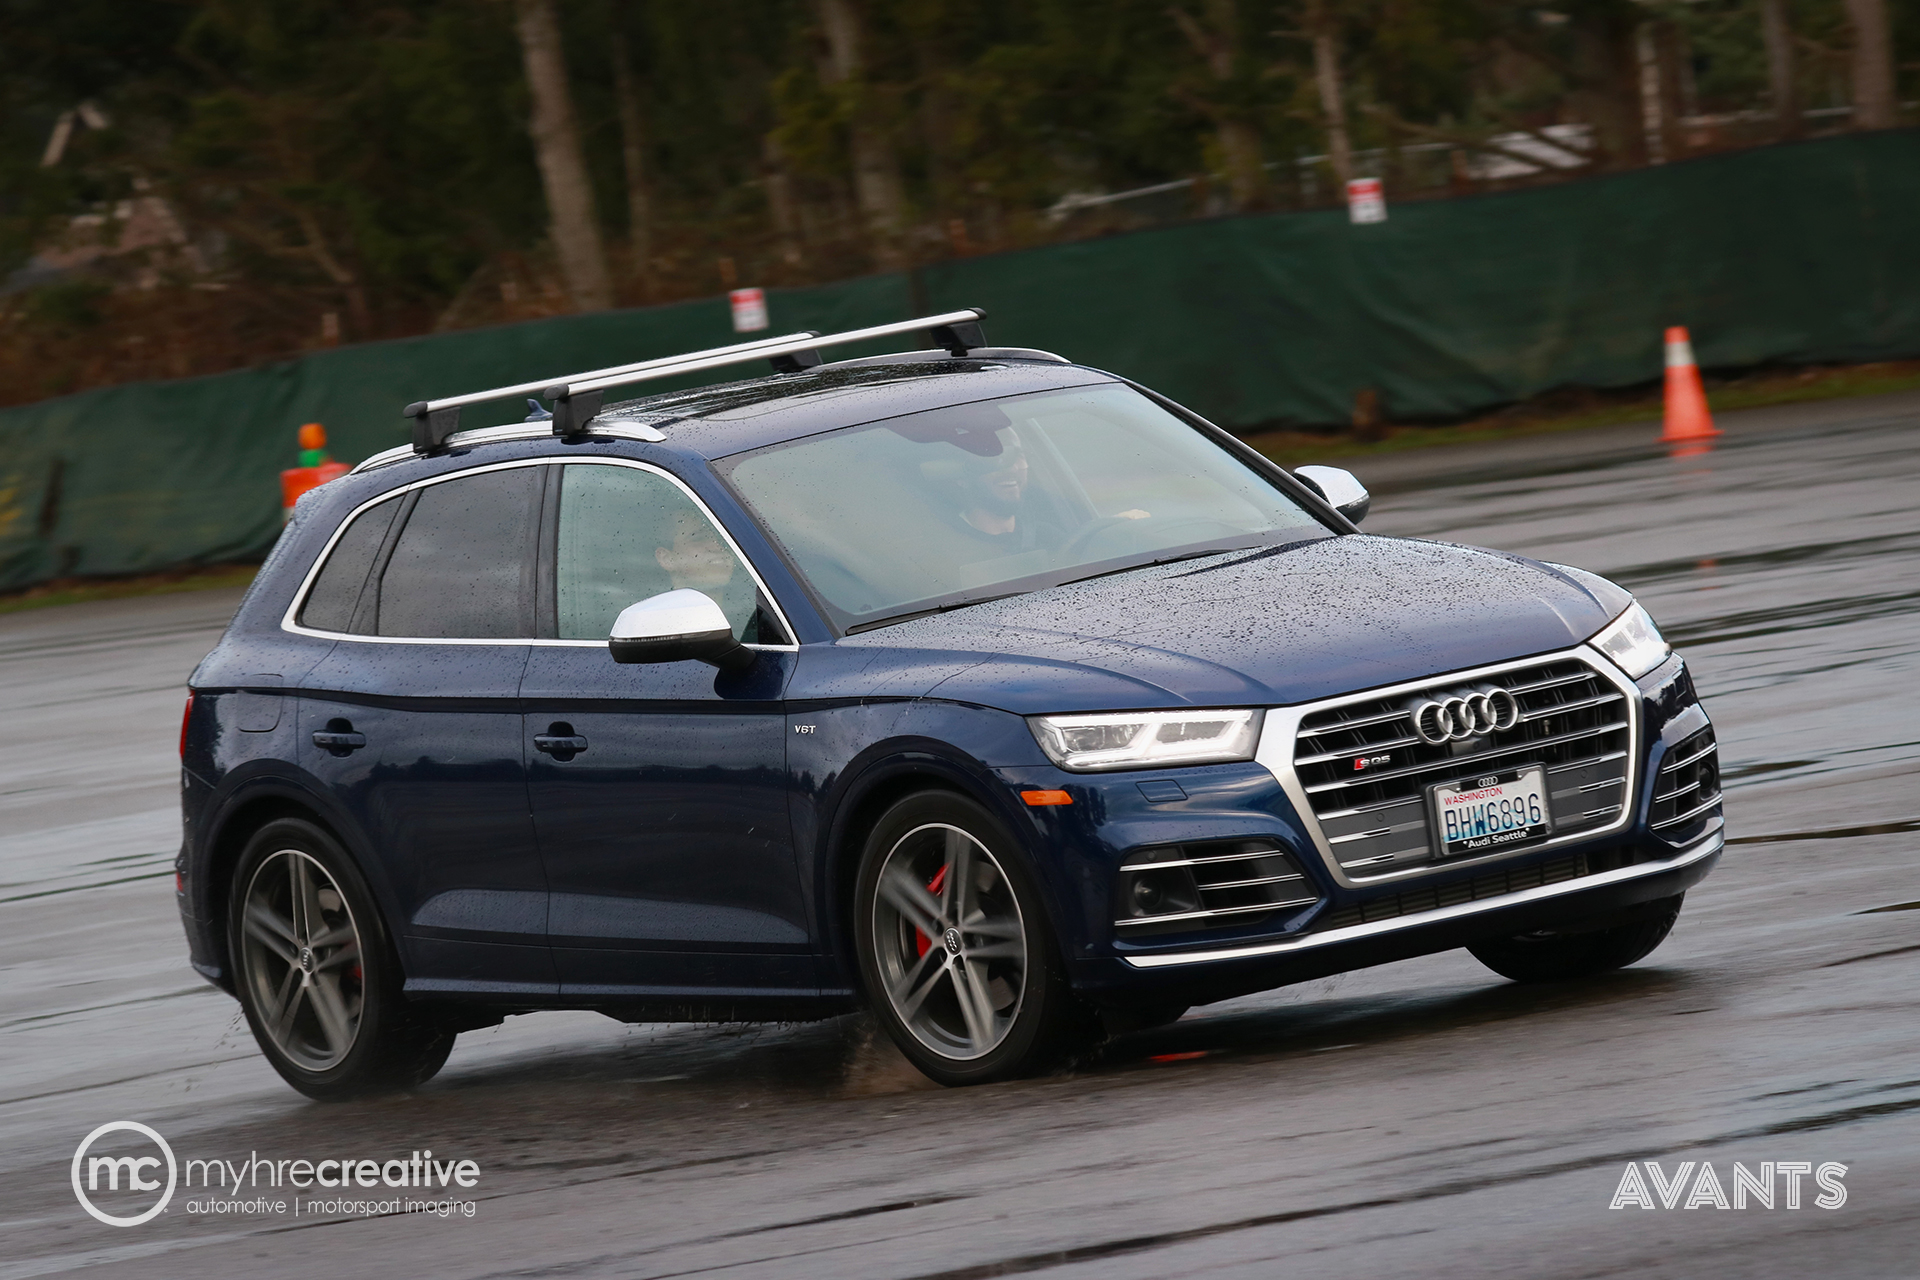 AudiSUV_MyhreCreative_Avants_02_w.jpg